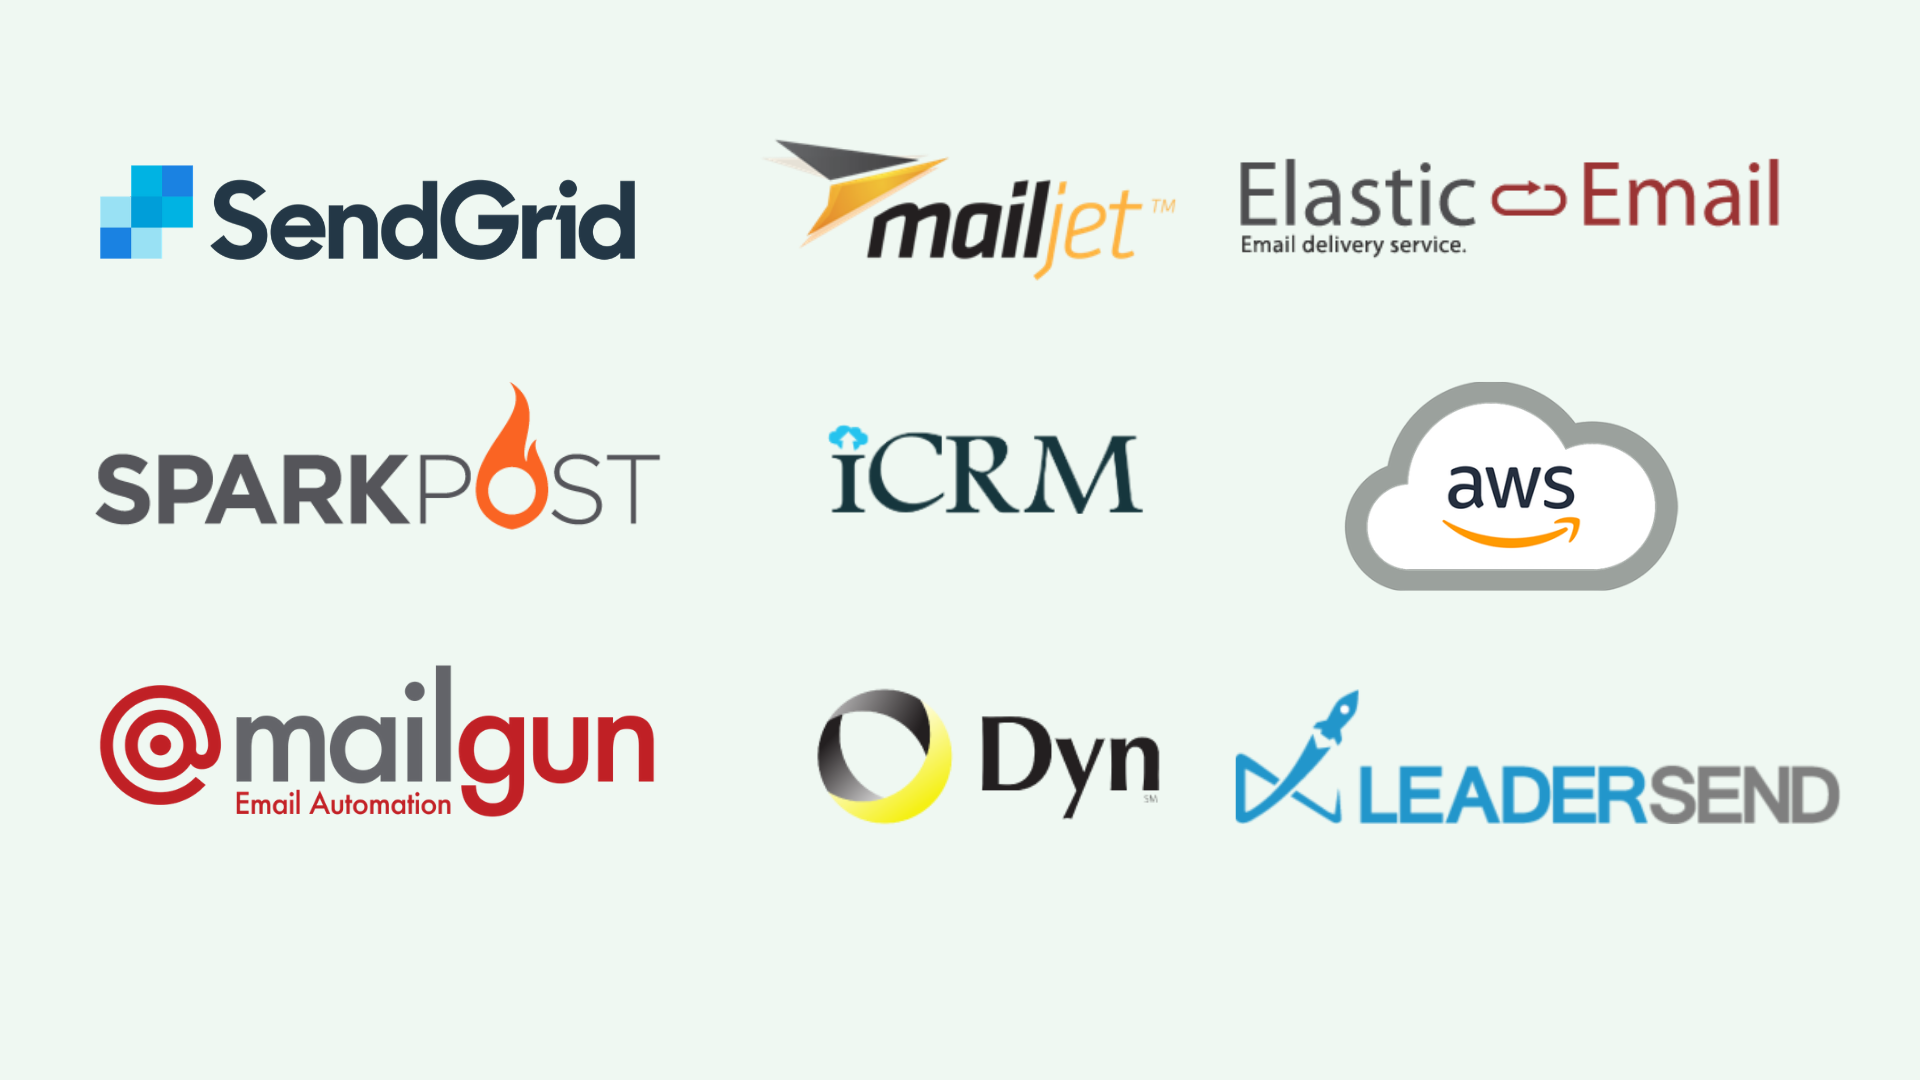 Integrates easily with any SMTP server. ICRM Mailbooster - AI-Based Email Marketing Application